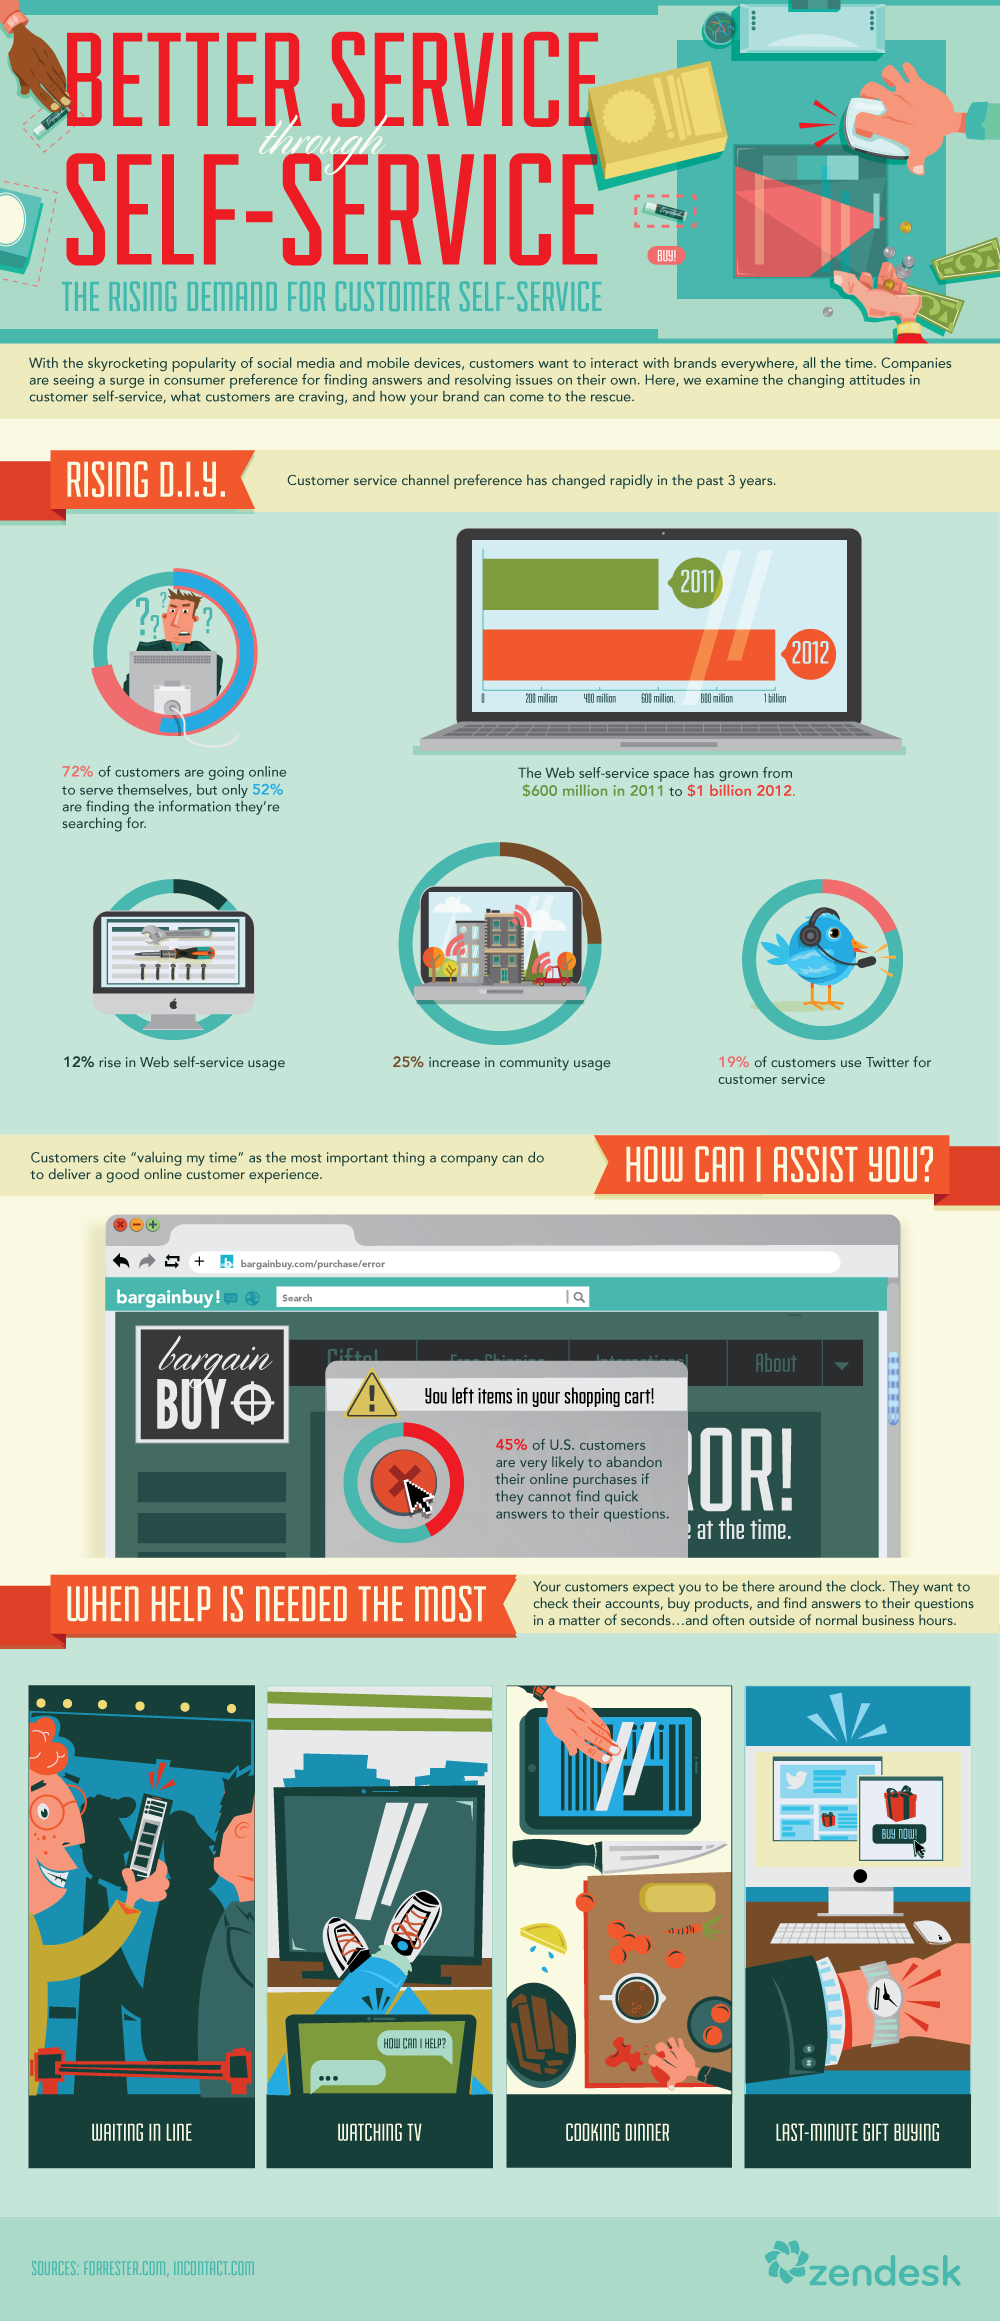 Infographic: Helping Your Customers Help Themselves